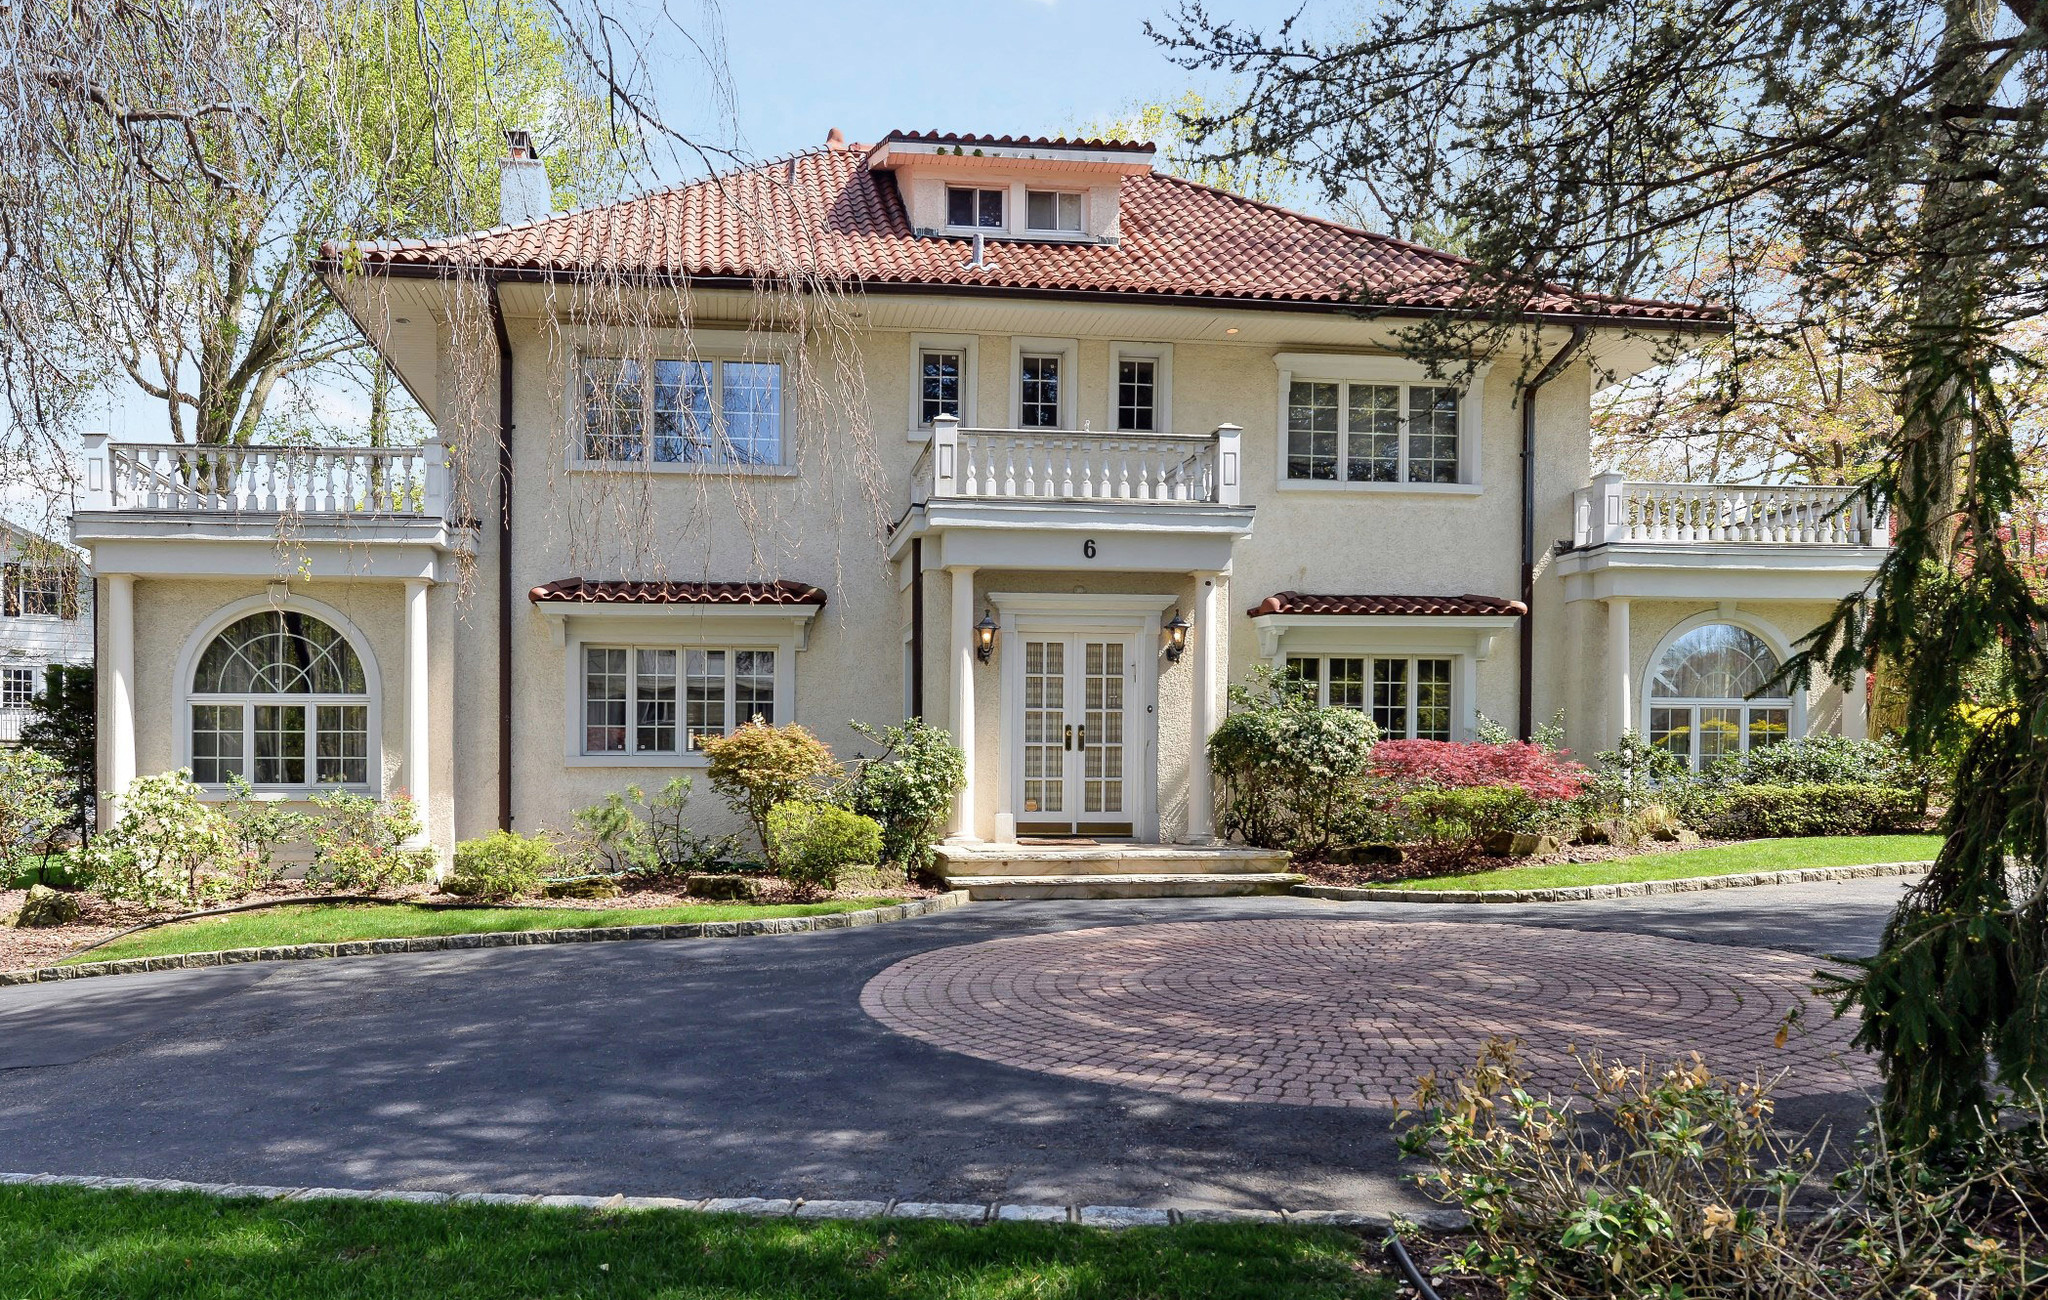 F scott fitzgerald 39 s 39 gatsby 39 house for sale for 3 9 for Long island estates for sale